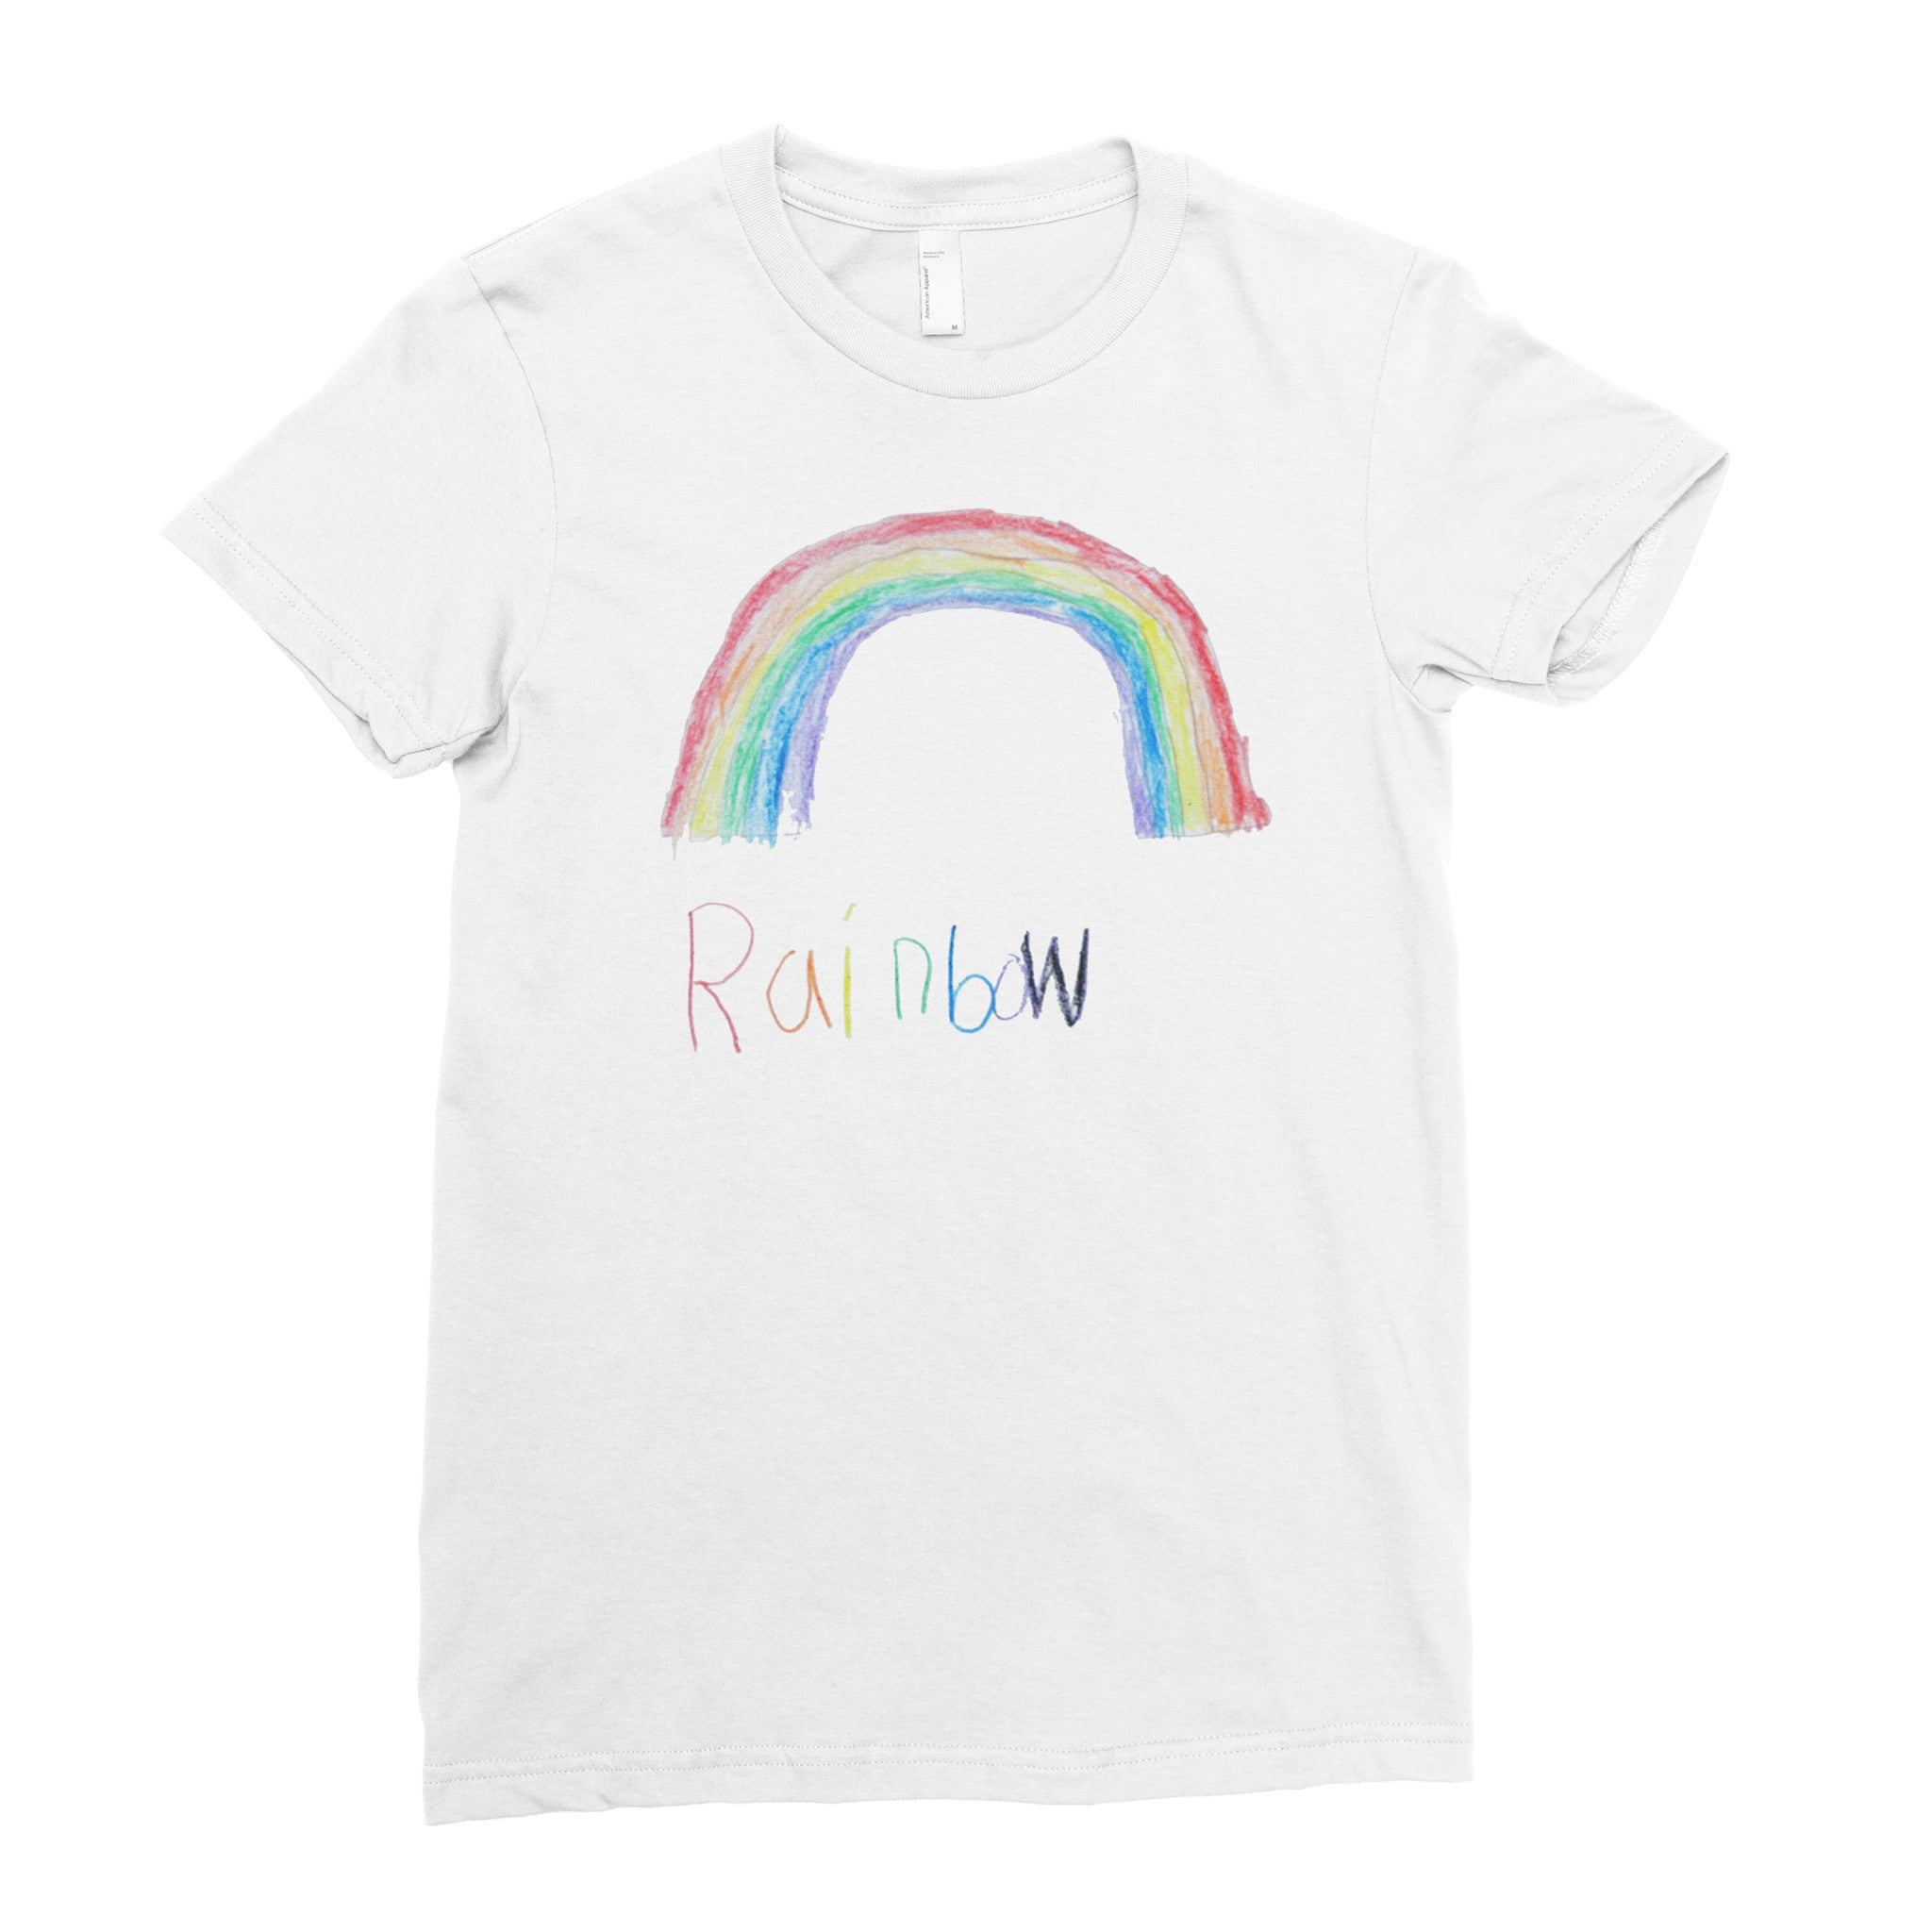 Molly's Rainbow - Adult T-shirt - Rightside Shirts